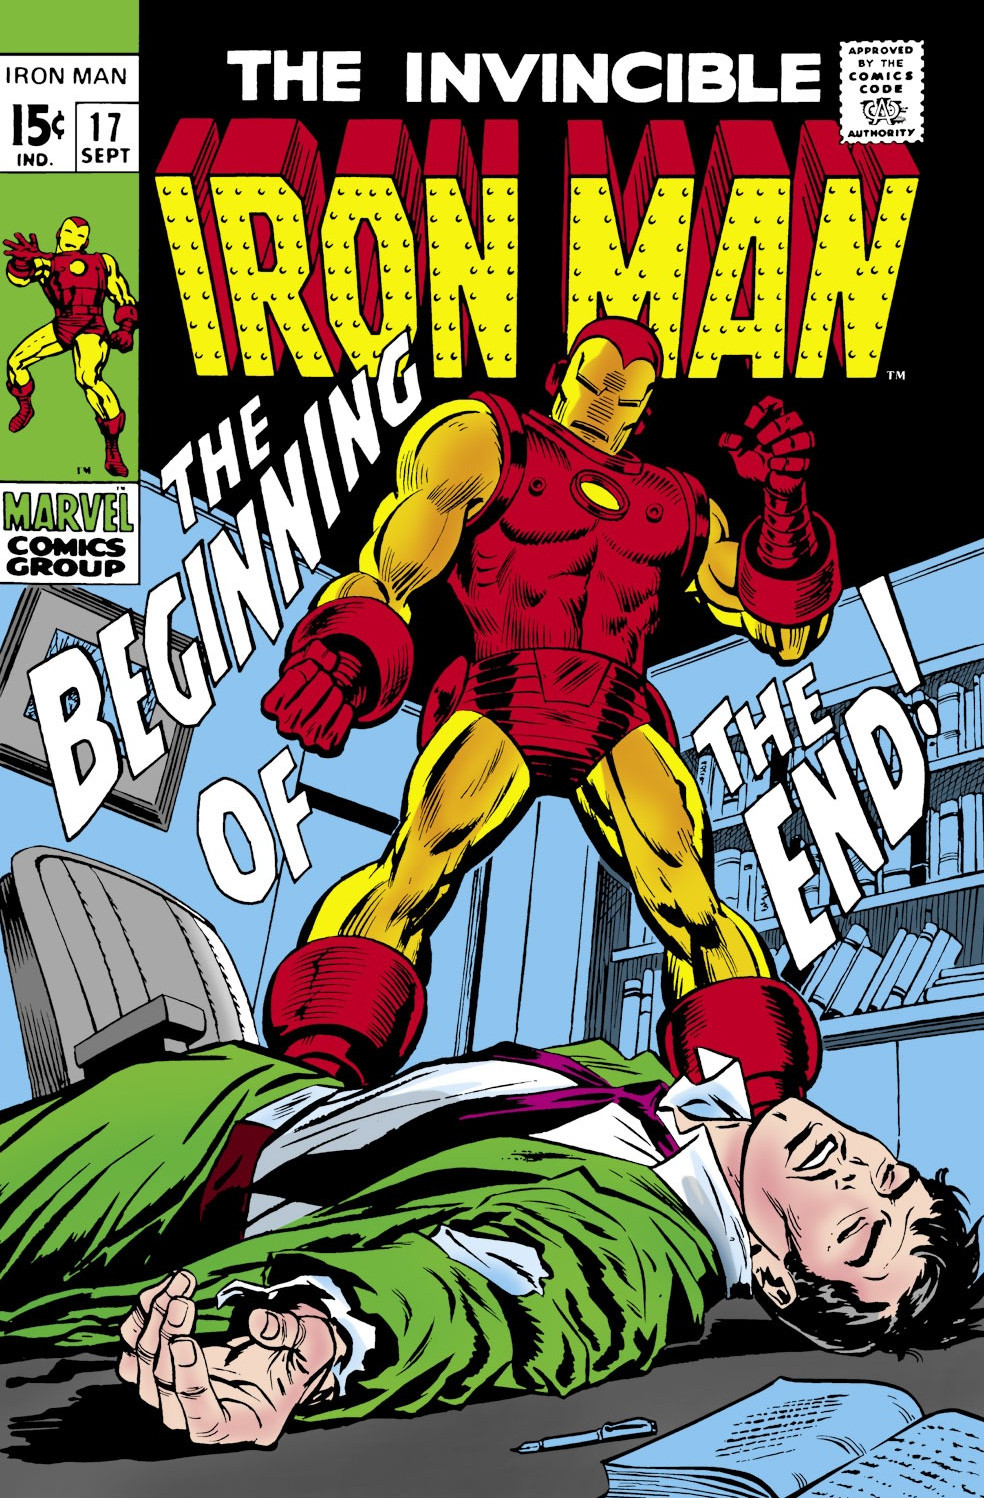 Image result for iron man 17